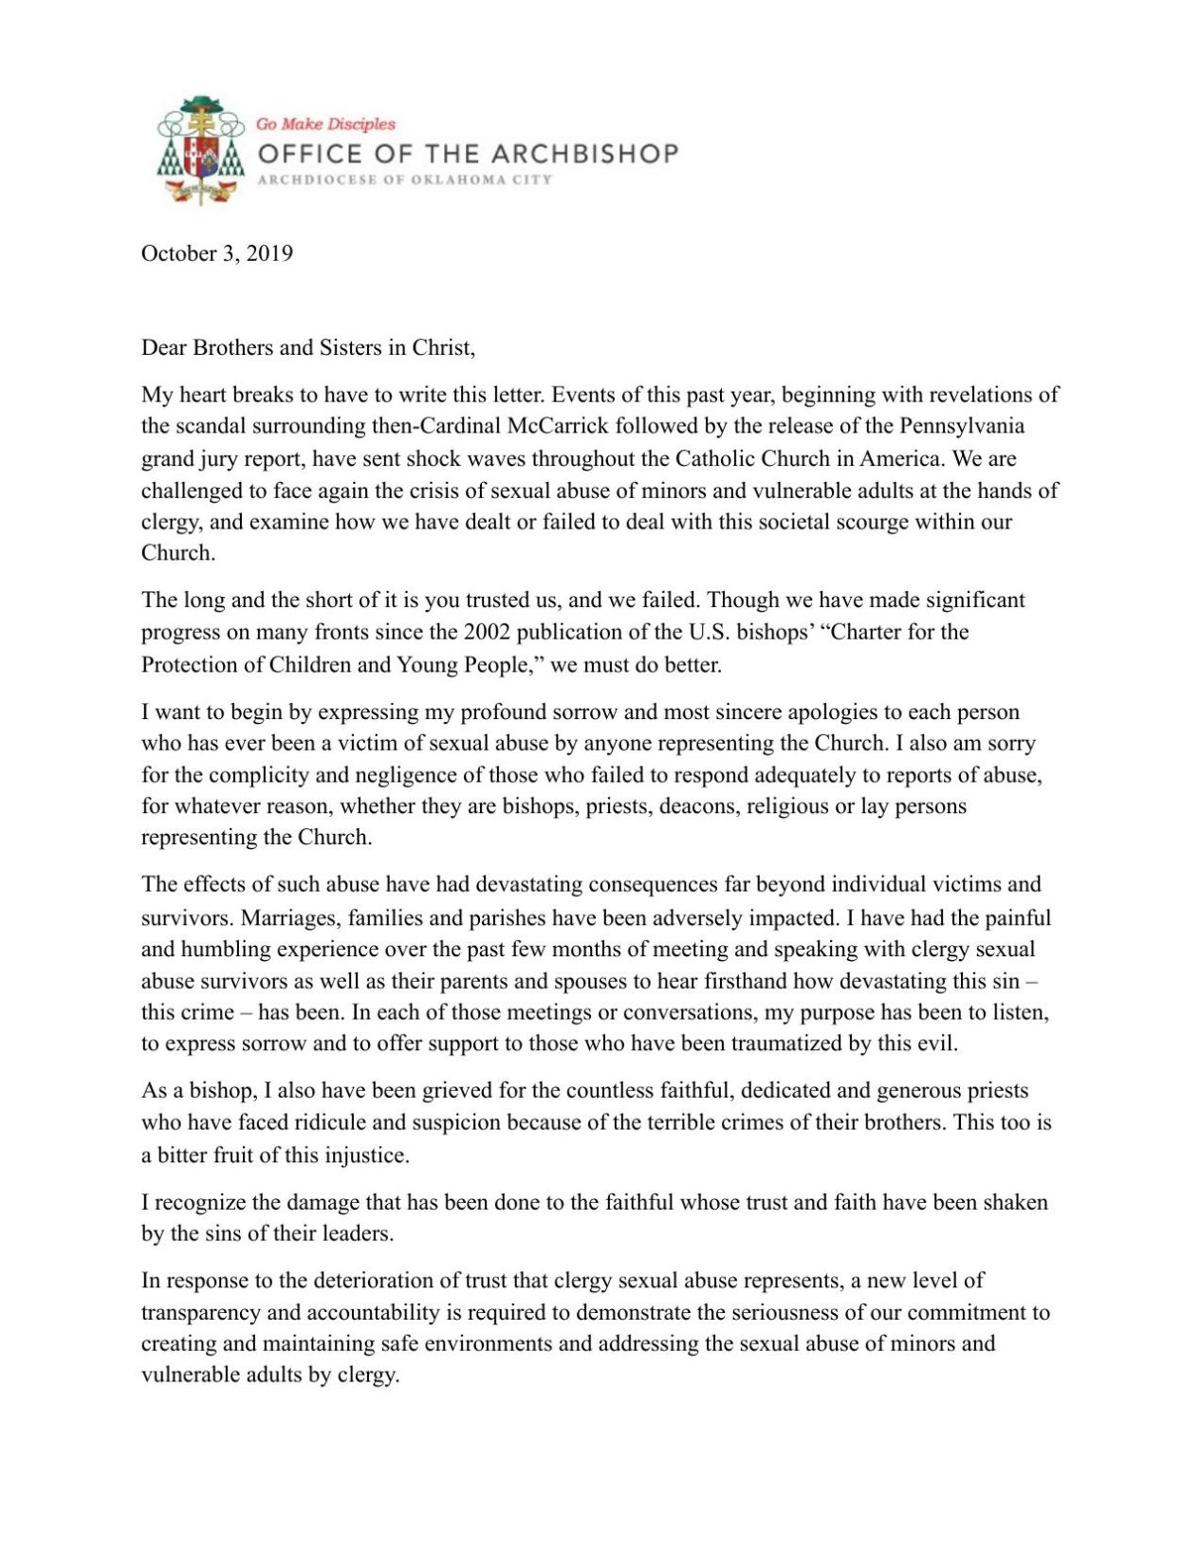 Archbishop Coakley Letter to the Faithful